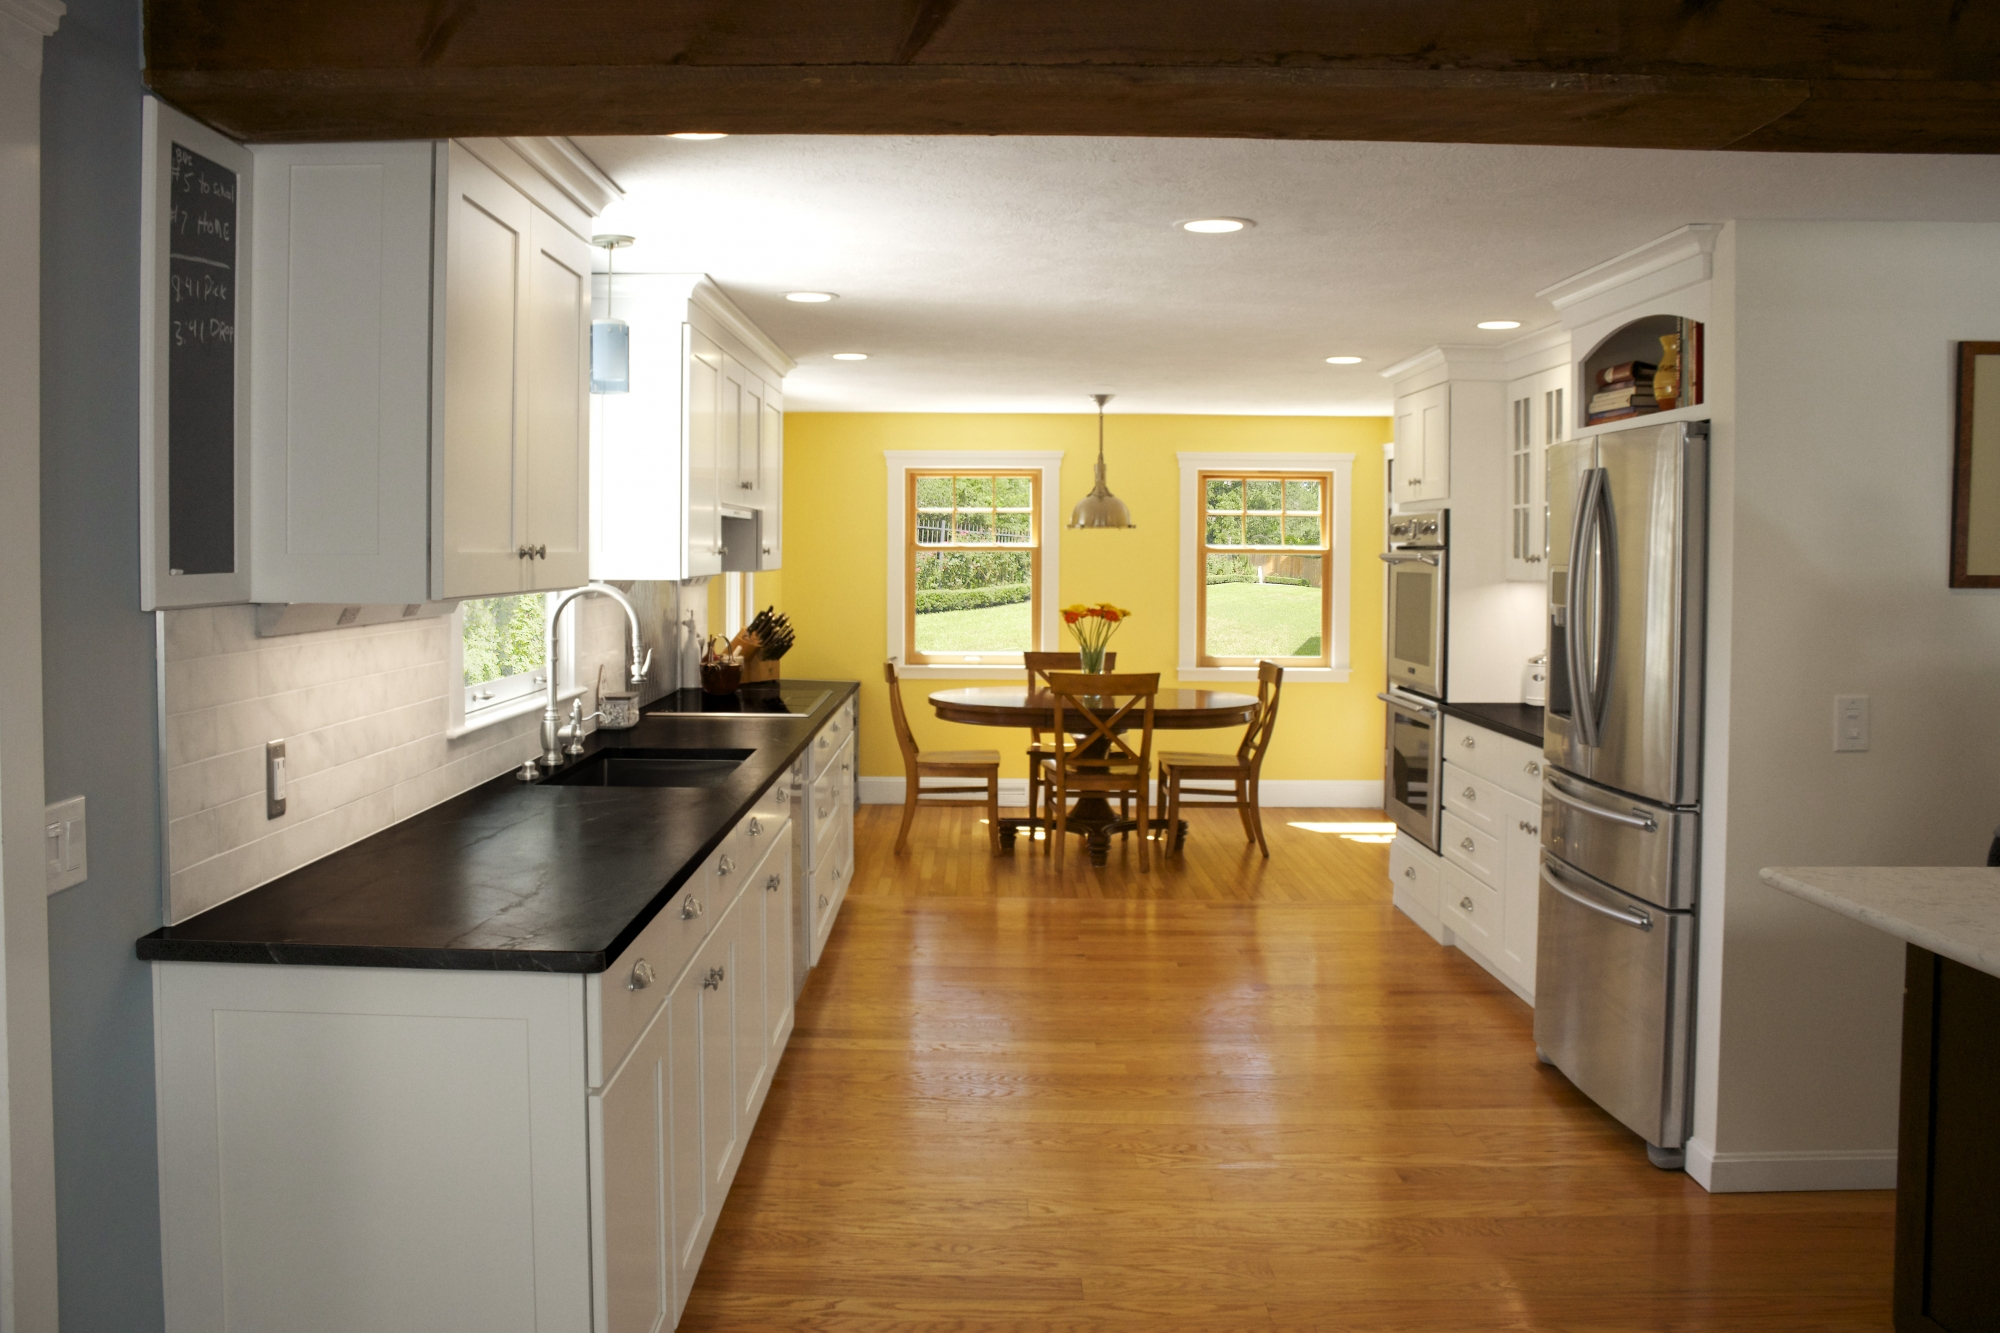 Desk-And-Table-Wonderful-White-Open-Floor-Kitchen-And-Yellow-